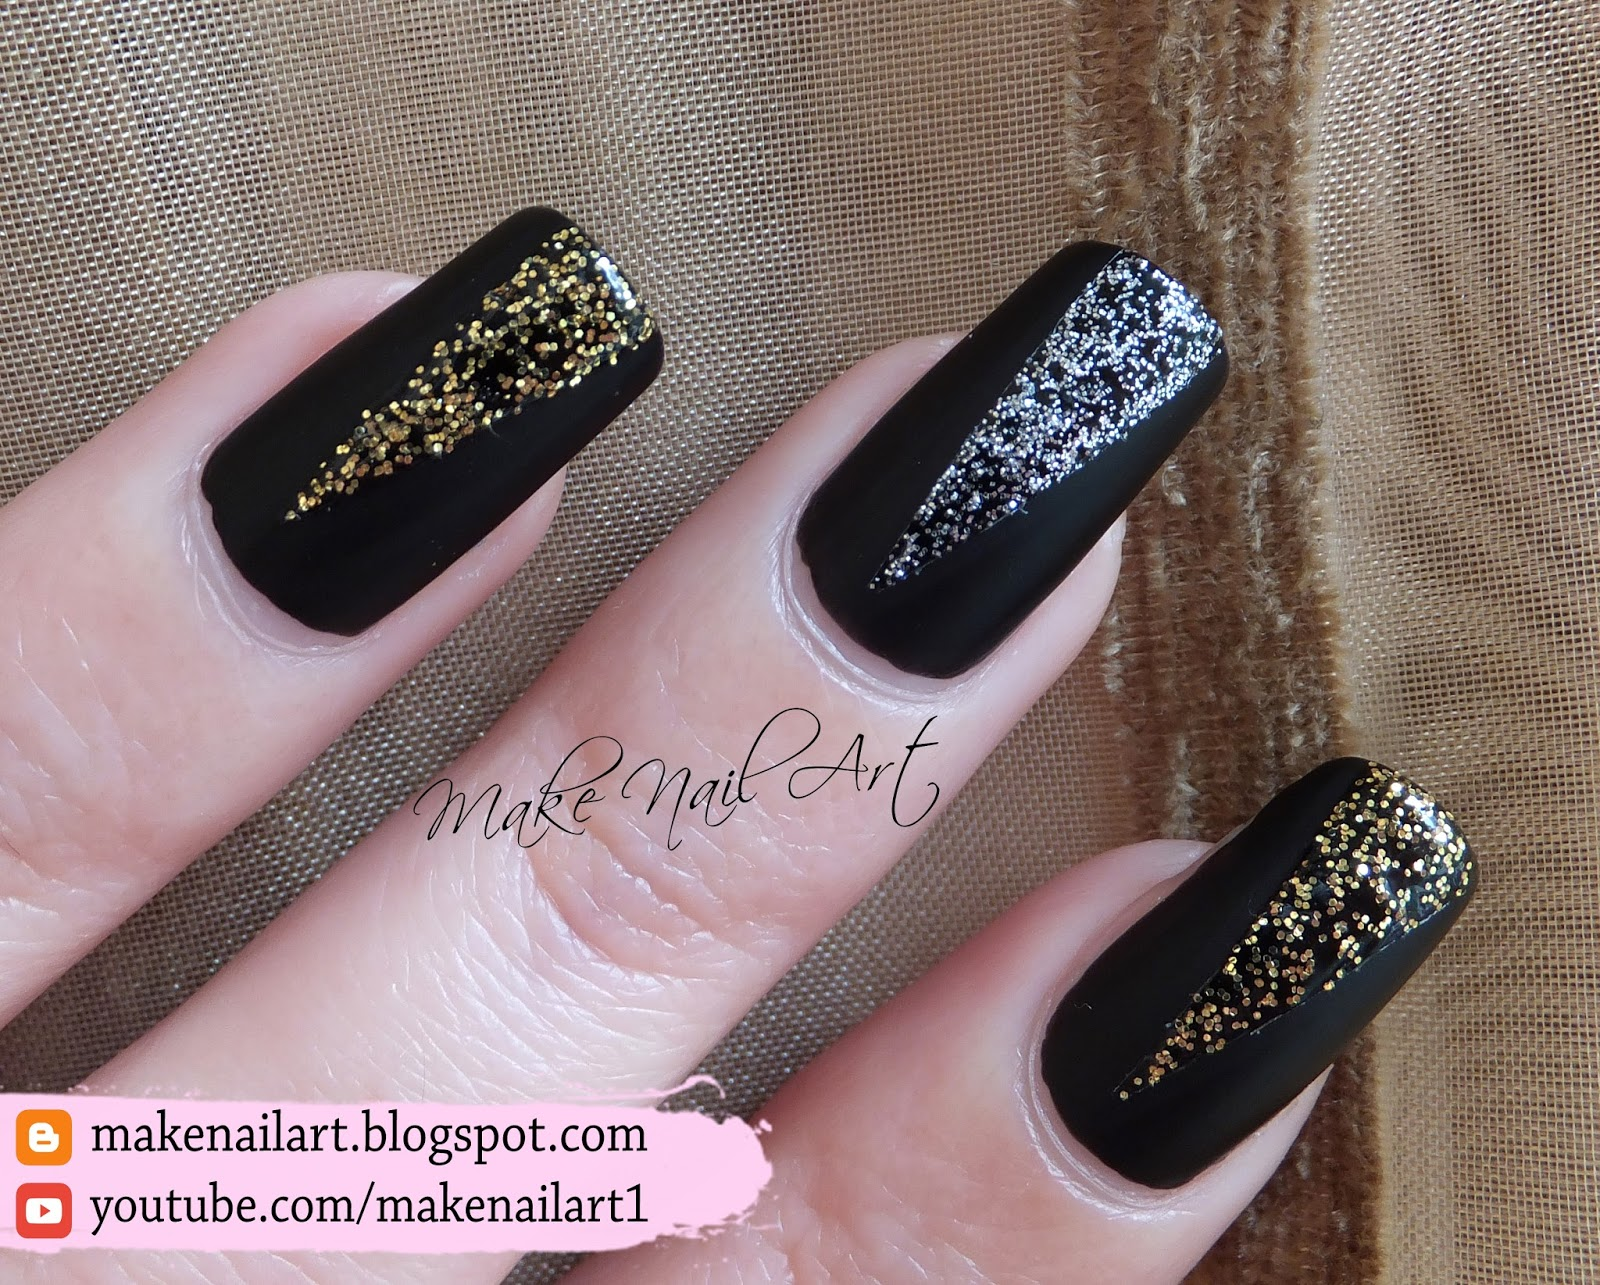 Make nail art april 2016 what you need black matte polish silver and gold glitter polish a striping tape solutioingenieria